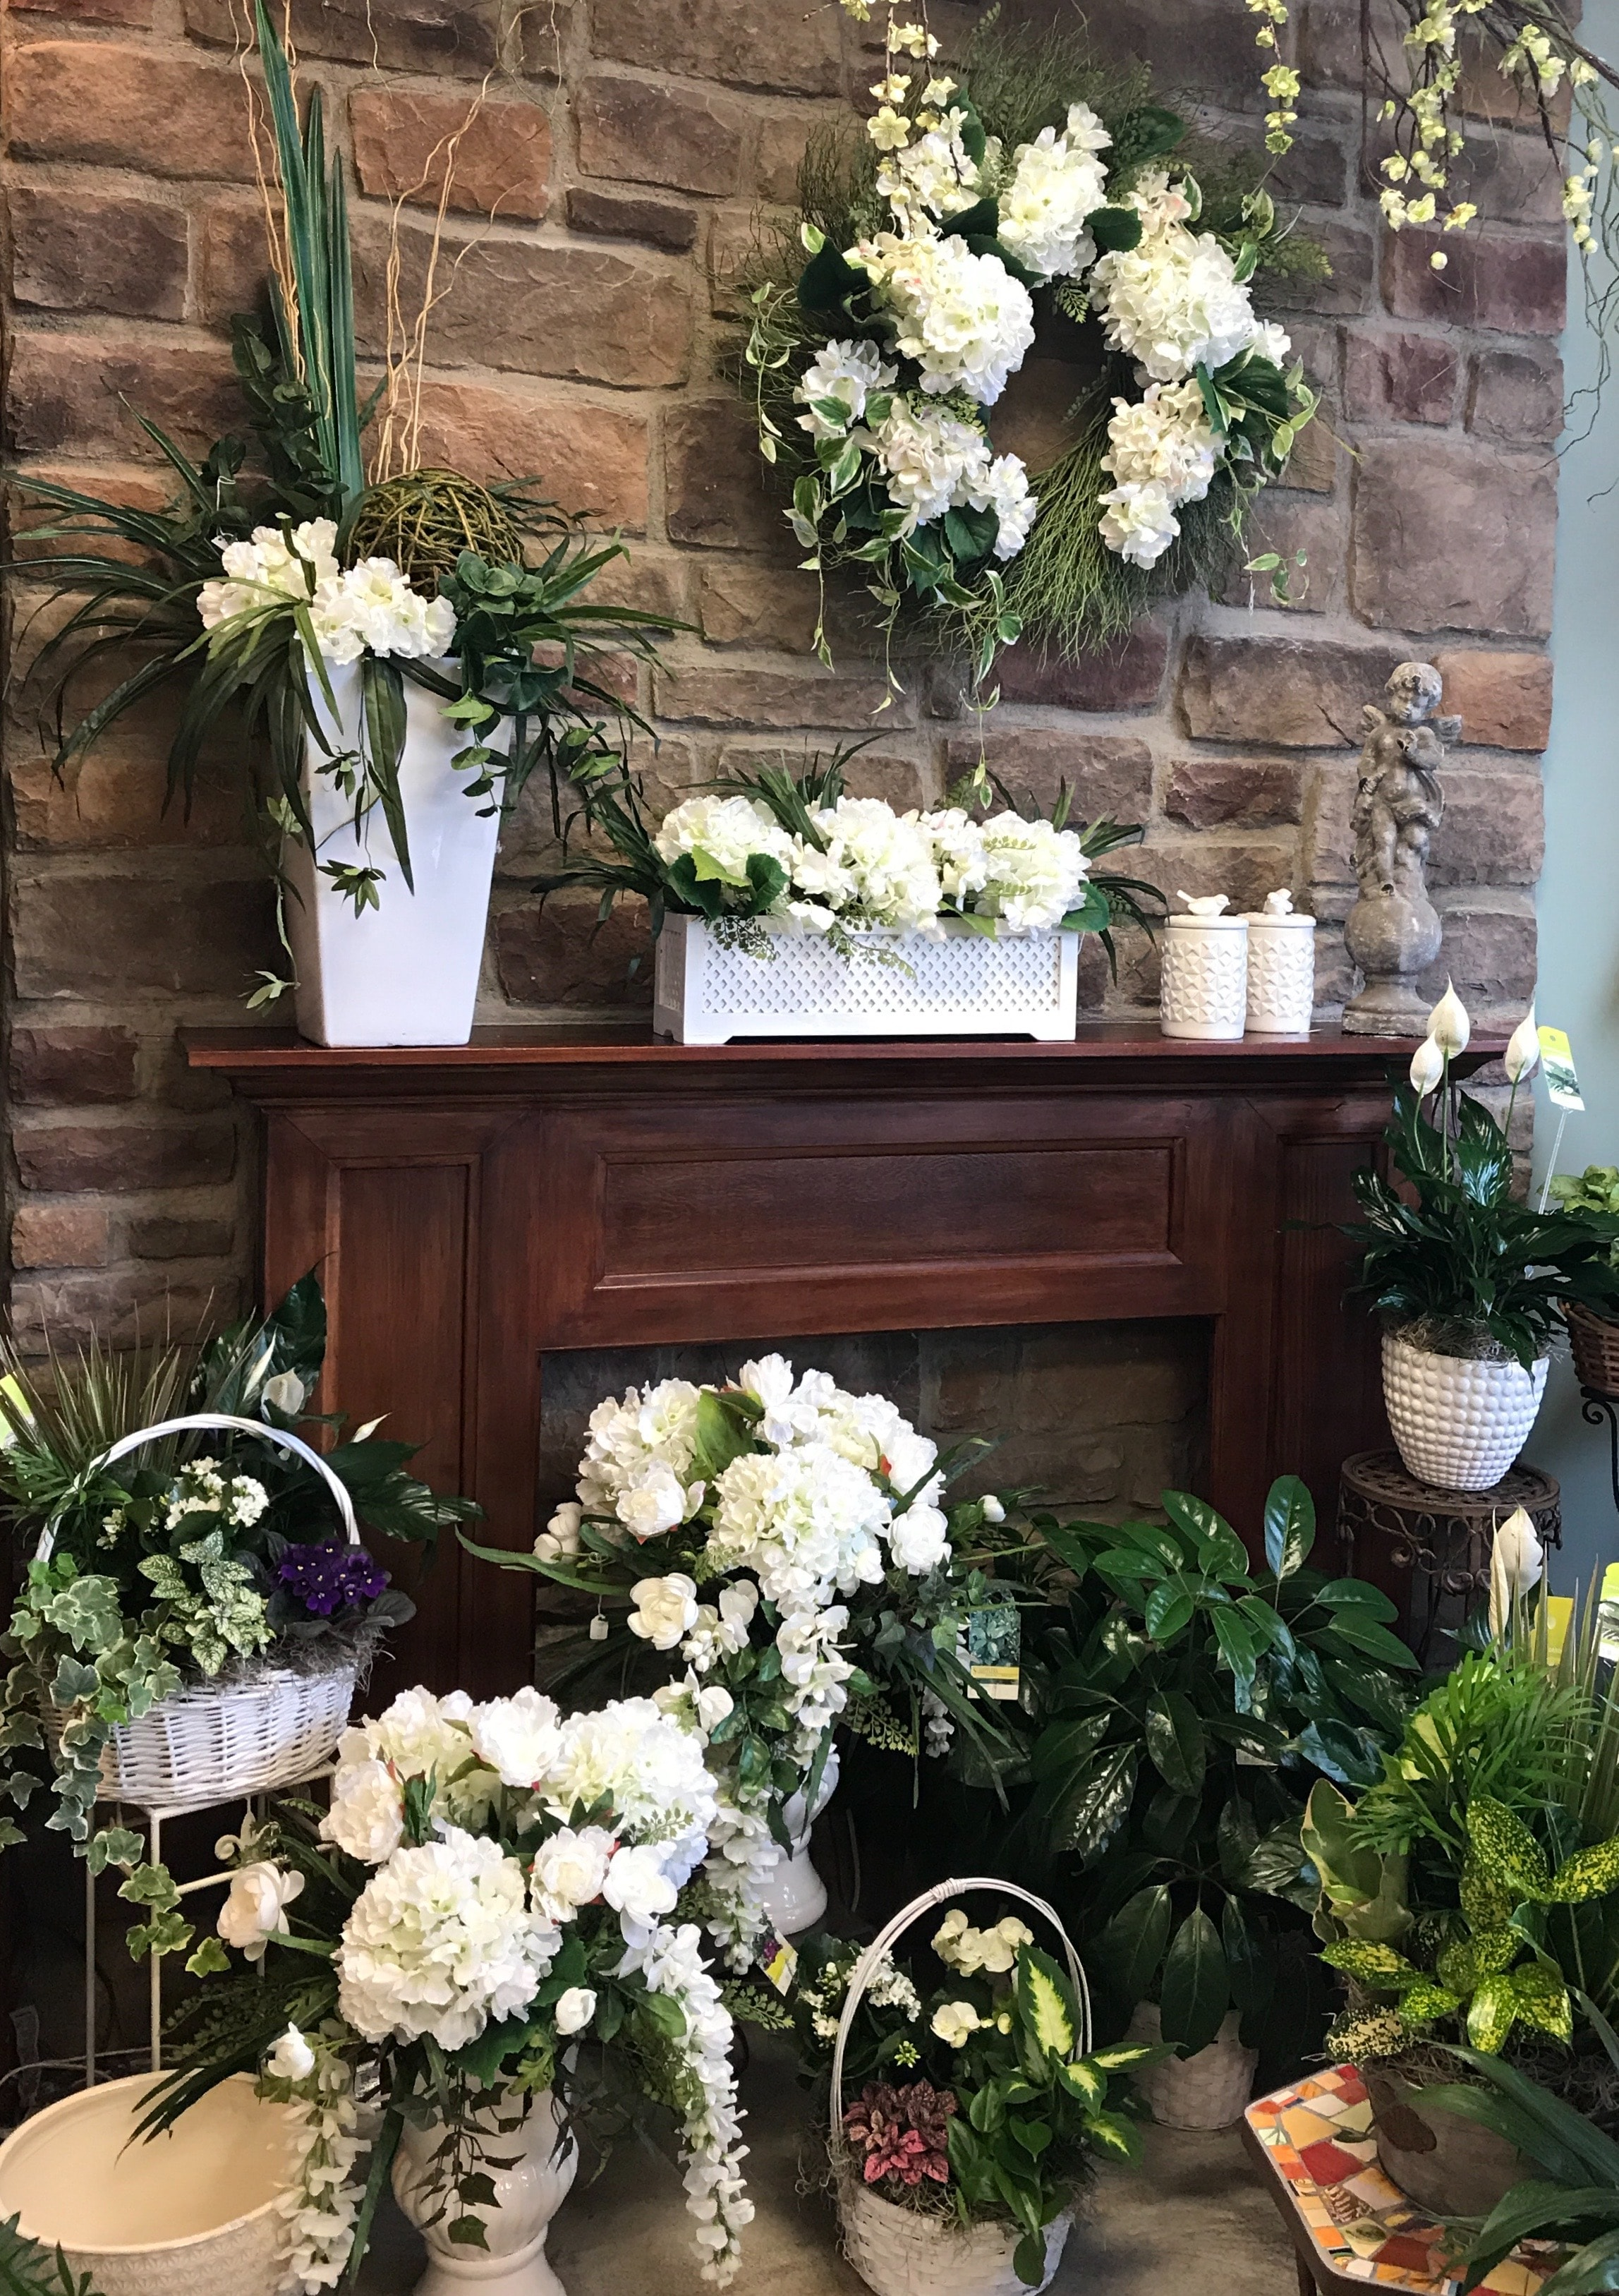 About us fireside flowers richboro pa let fireside flowers be your first choice for flowers izmirmasajfo